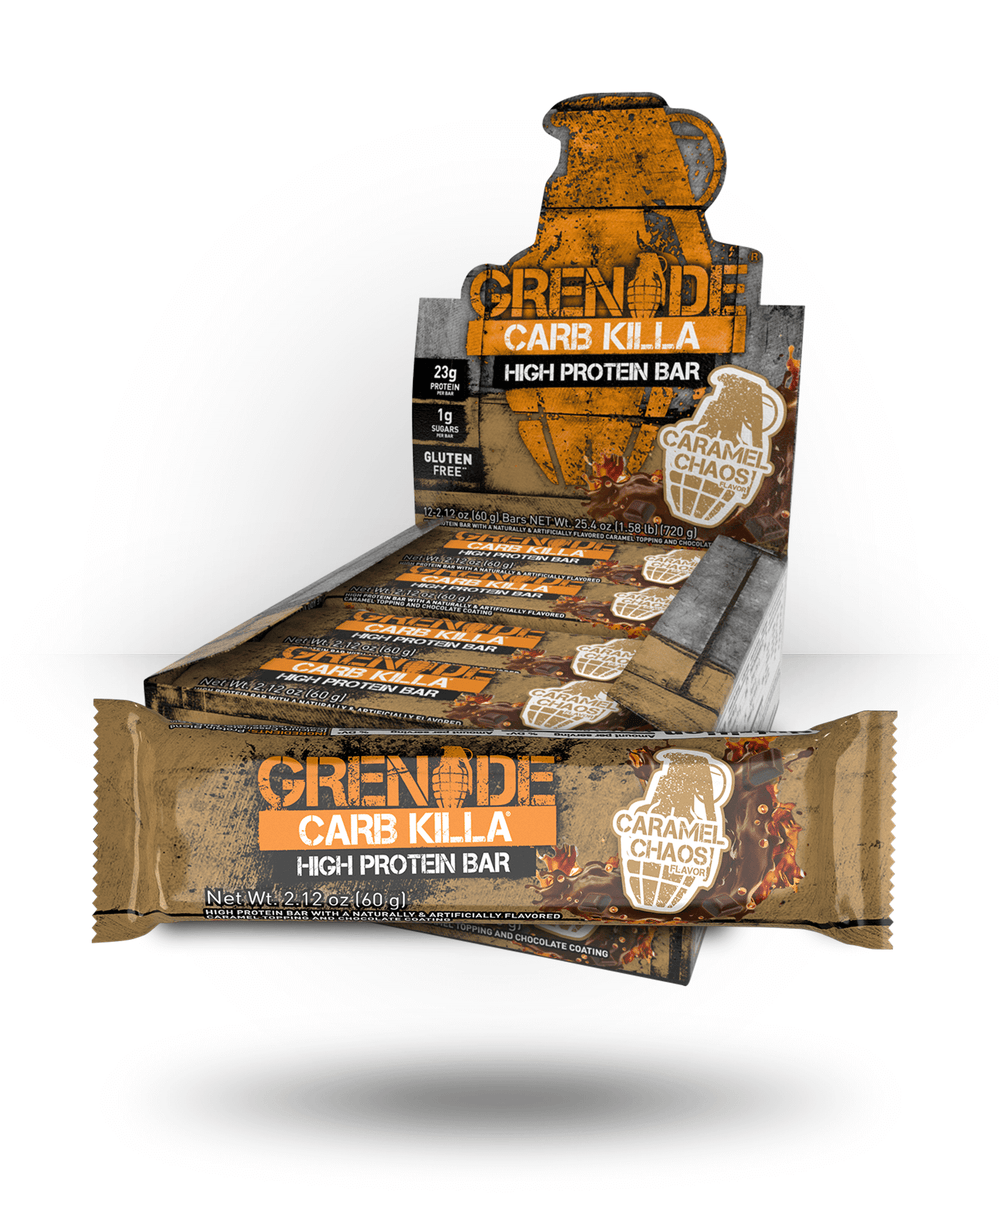 Grenade Carb Killa Bar Caramel Chaos, 12 Bars